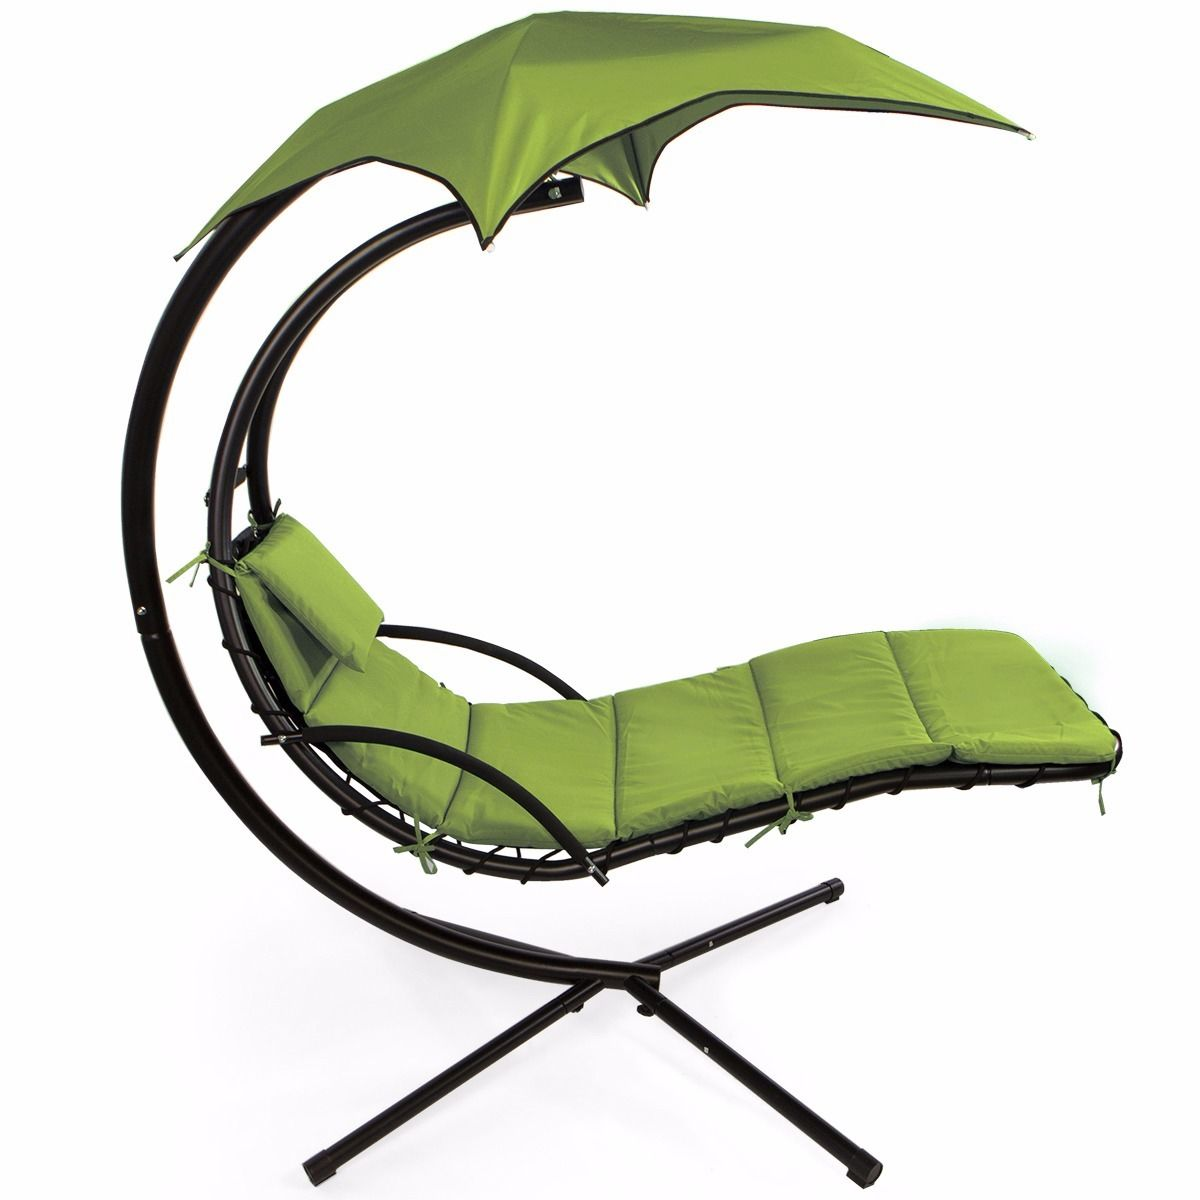 Barton Patio Hanging Helicopter dream Lounger Chair Stand ... on Hanging Helicopter Dream Lounger Chair id=76763